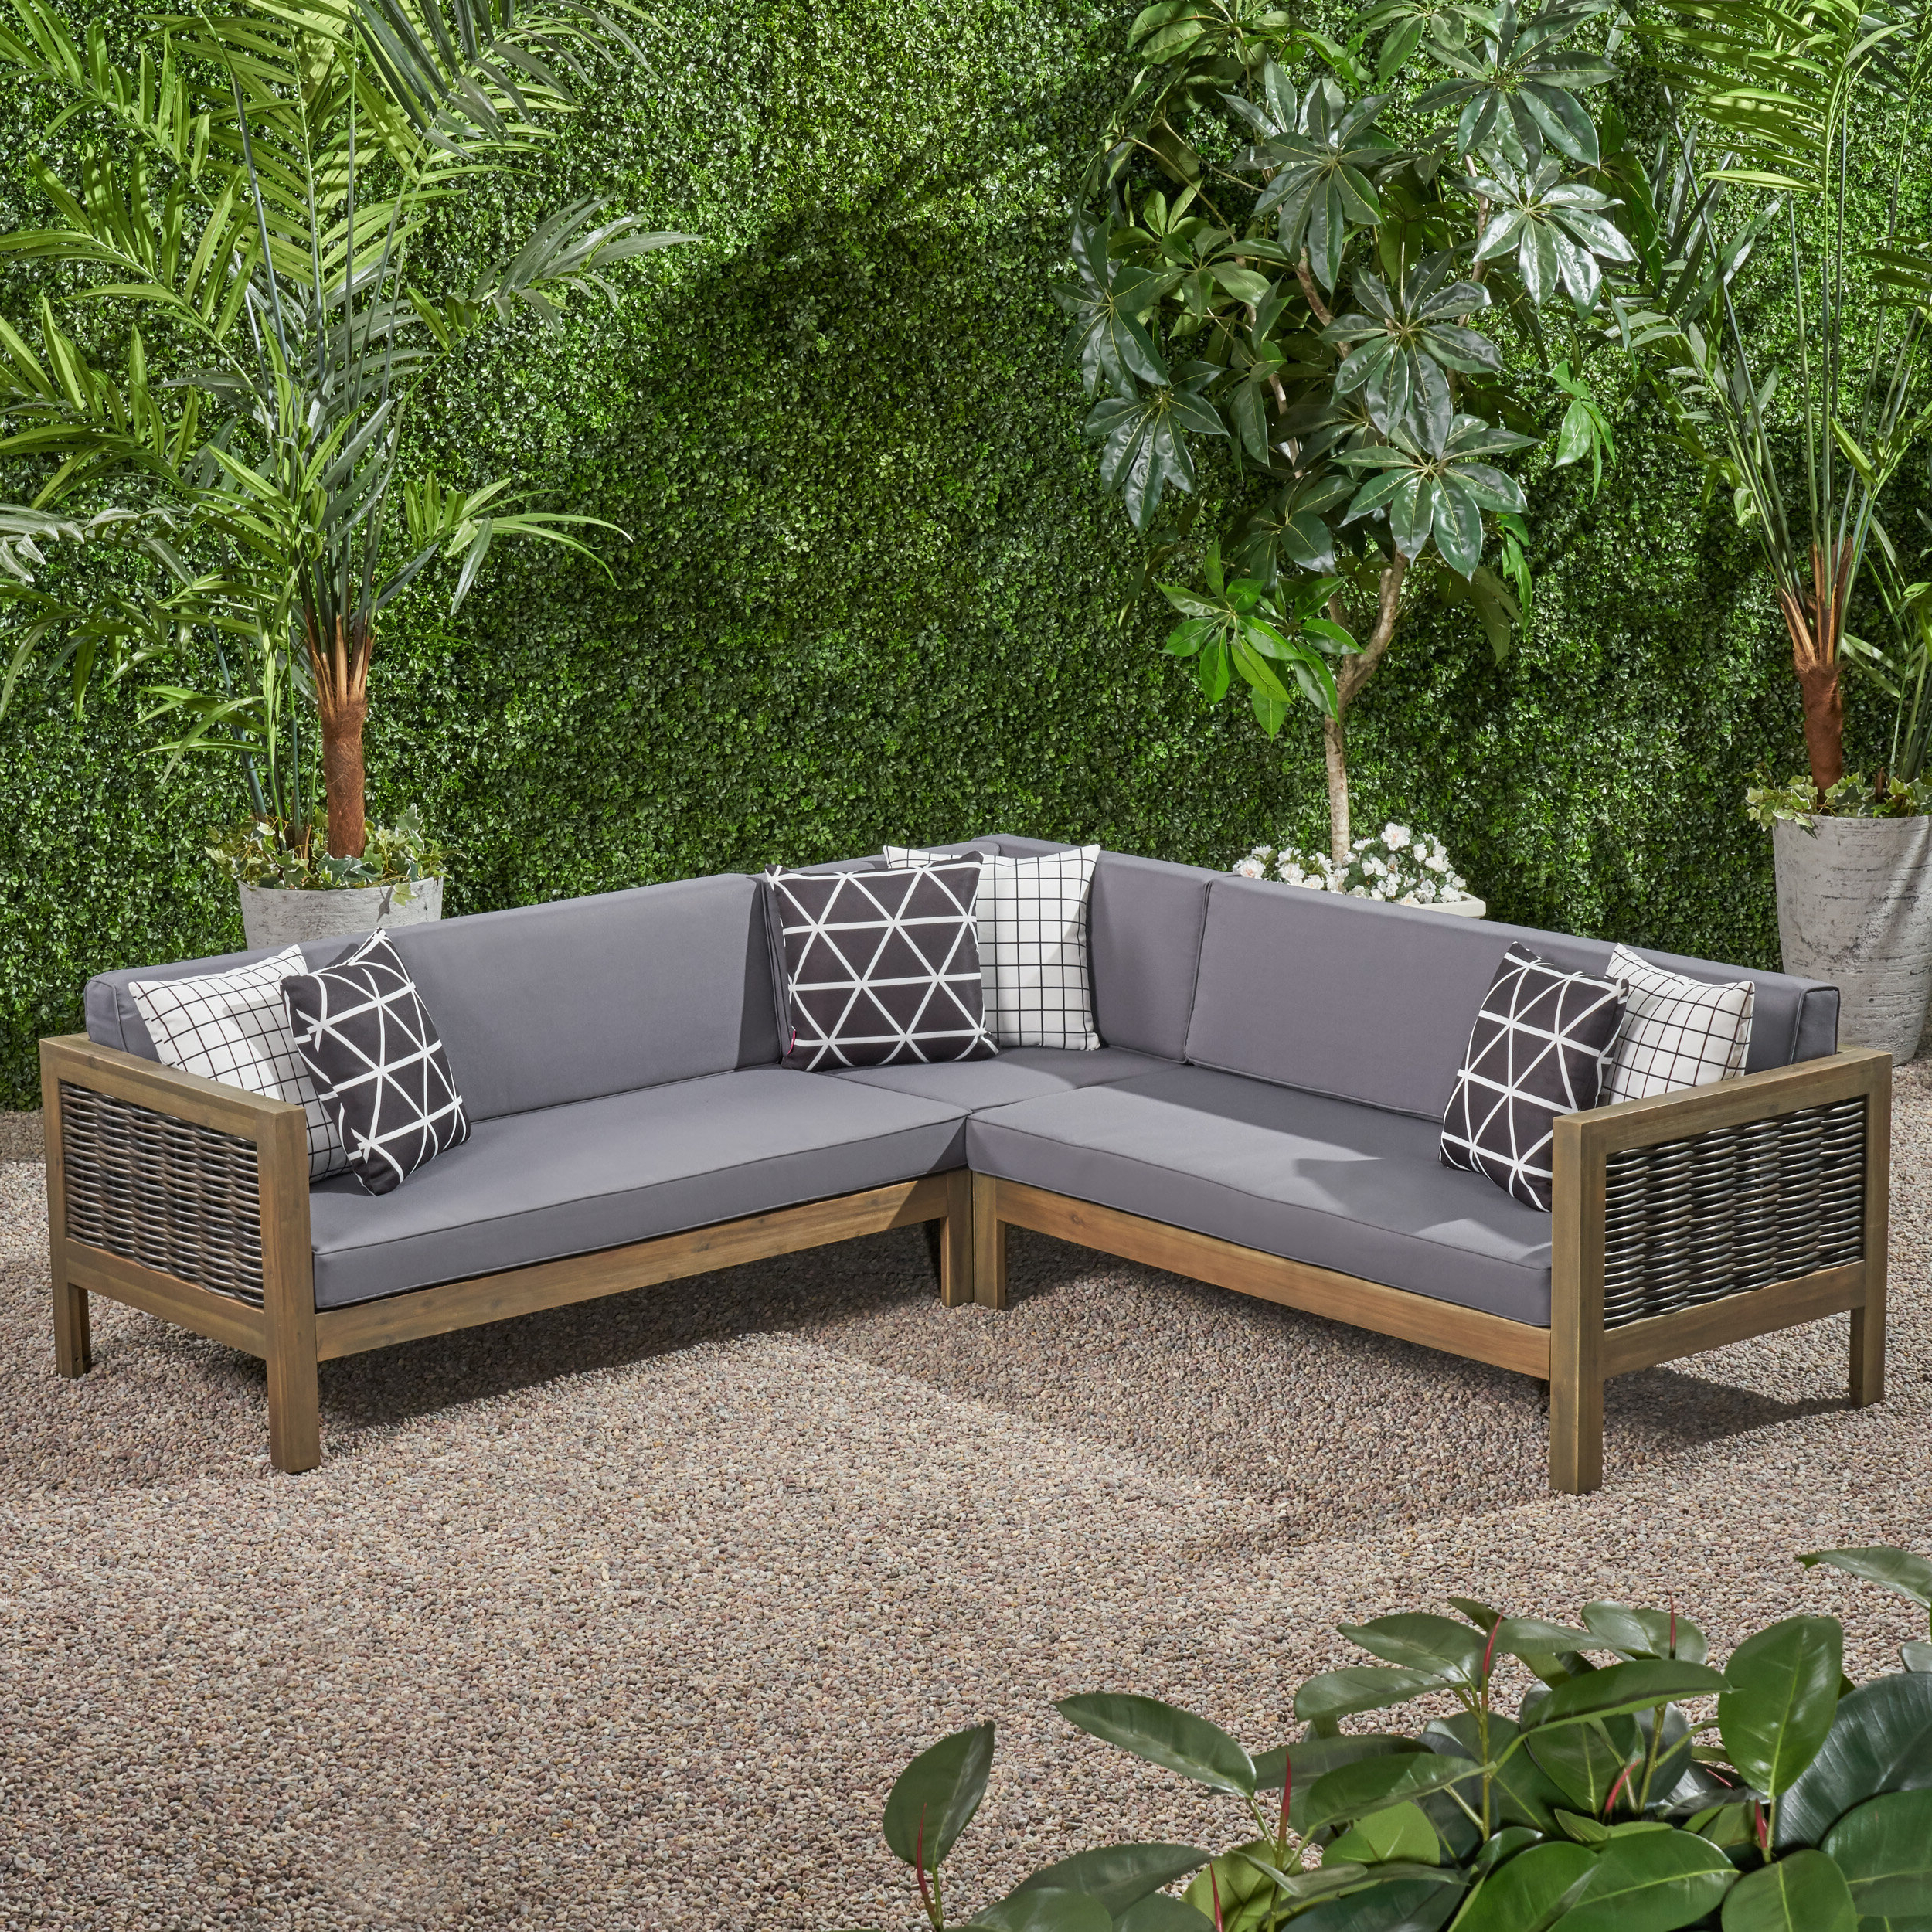 Hursey Patio Sectionals Inside Most Recent Kennison Patio Sectional With Cushions (View 10 of 20)